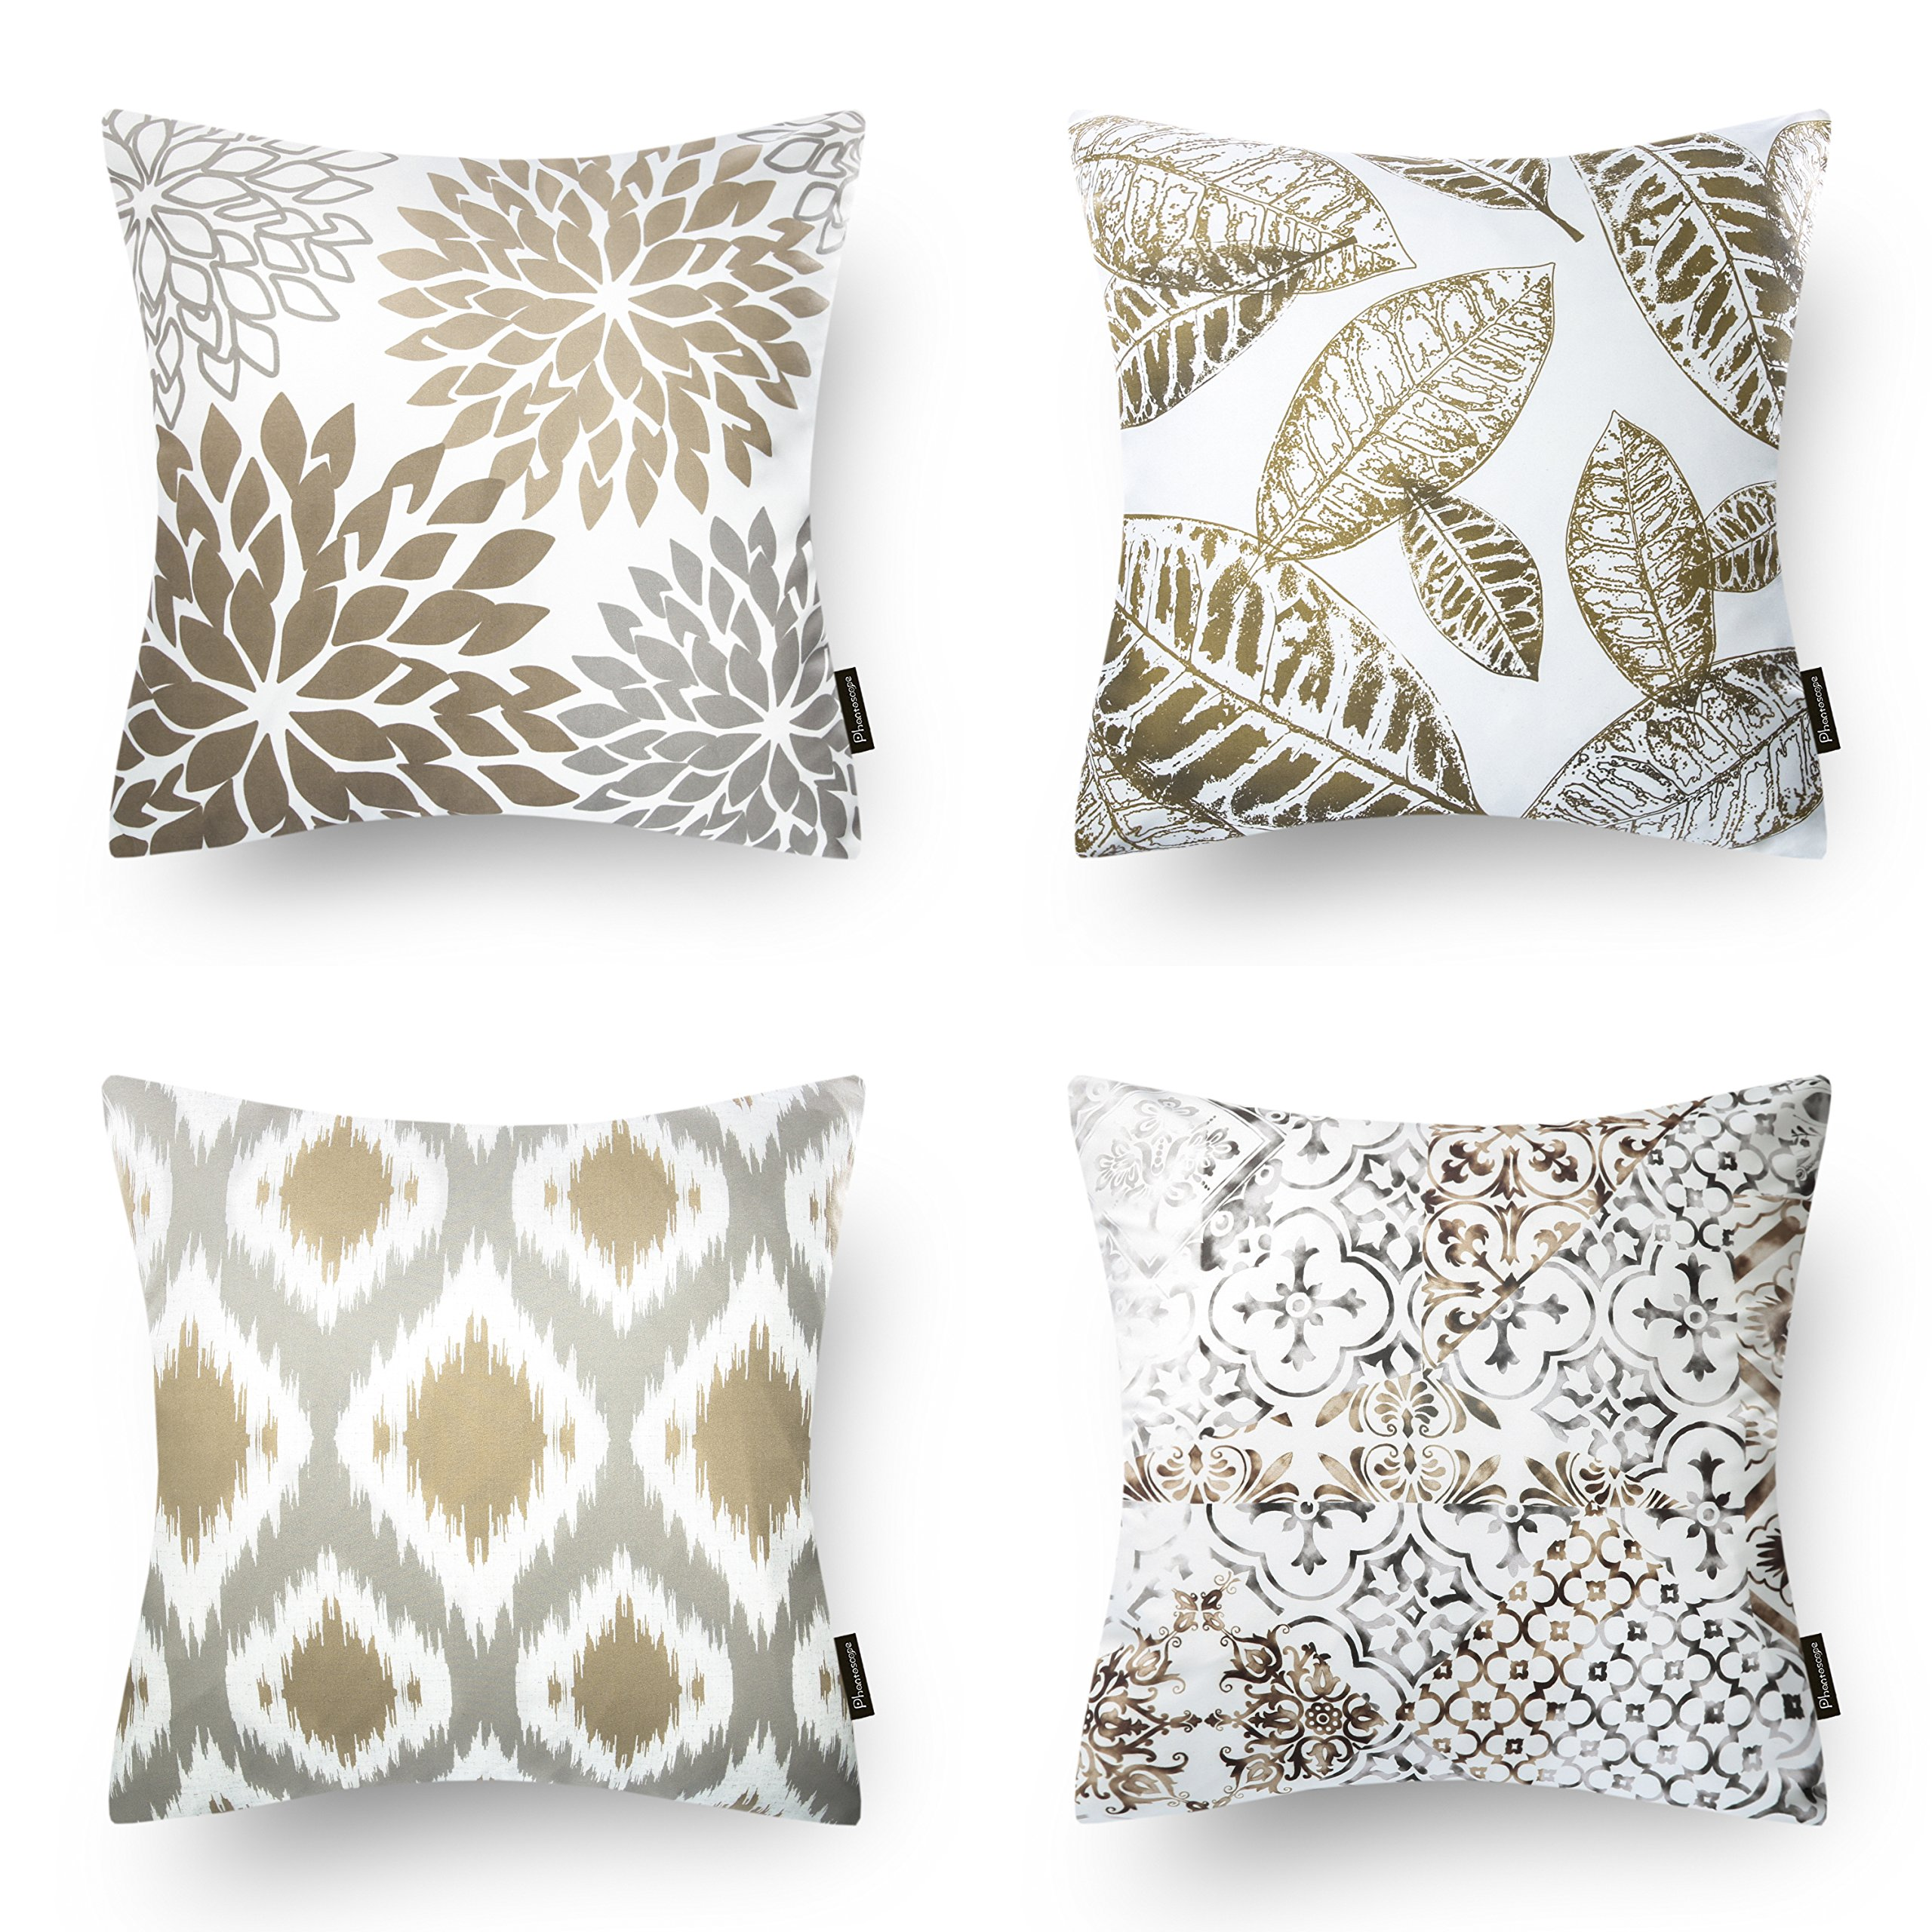 PHANTOSCOPE New Living Series Coffee Color Decorative Throw Pillow Case Cushion Cover 18'' x 18'' 45cm x 45cm Set of 4 by PHANTOSCOPE